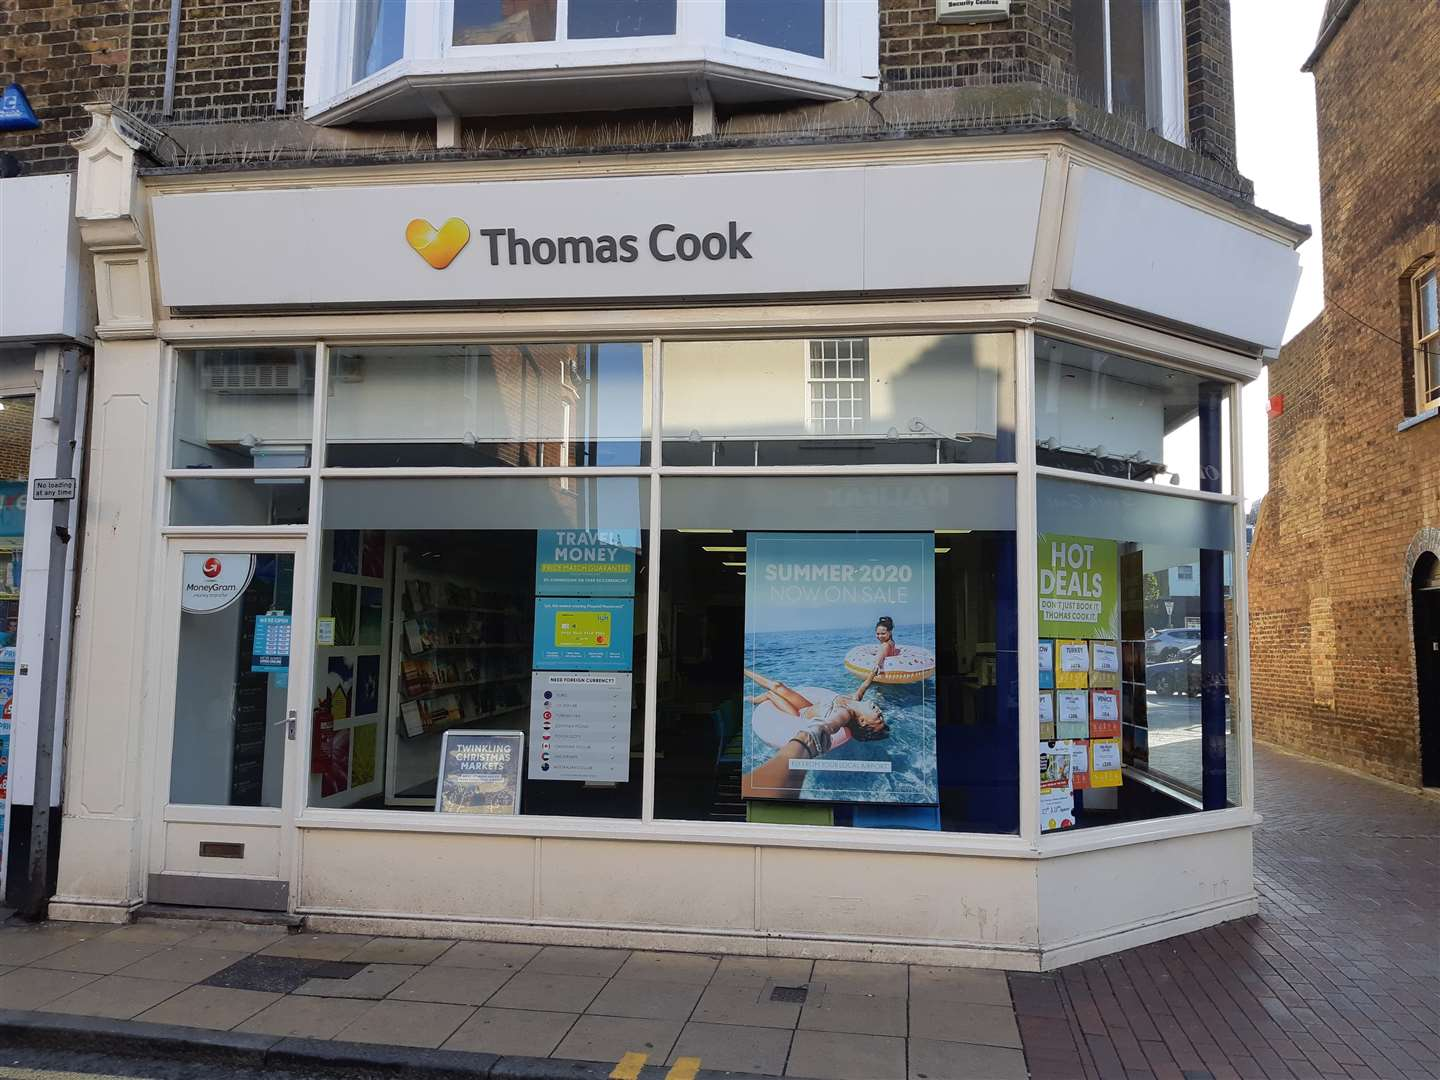 Staff were told not to go to the Thomas Cook shop in Deal High Street today after news of the company's collapse